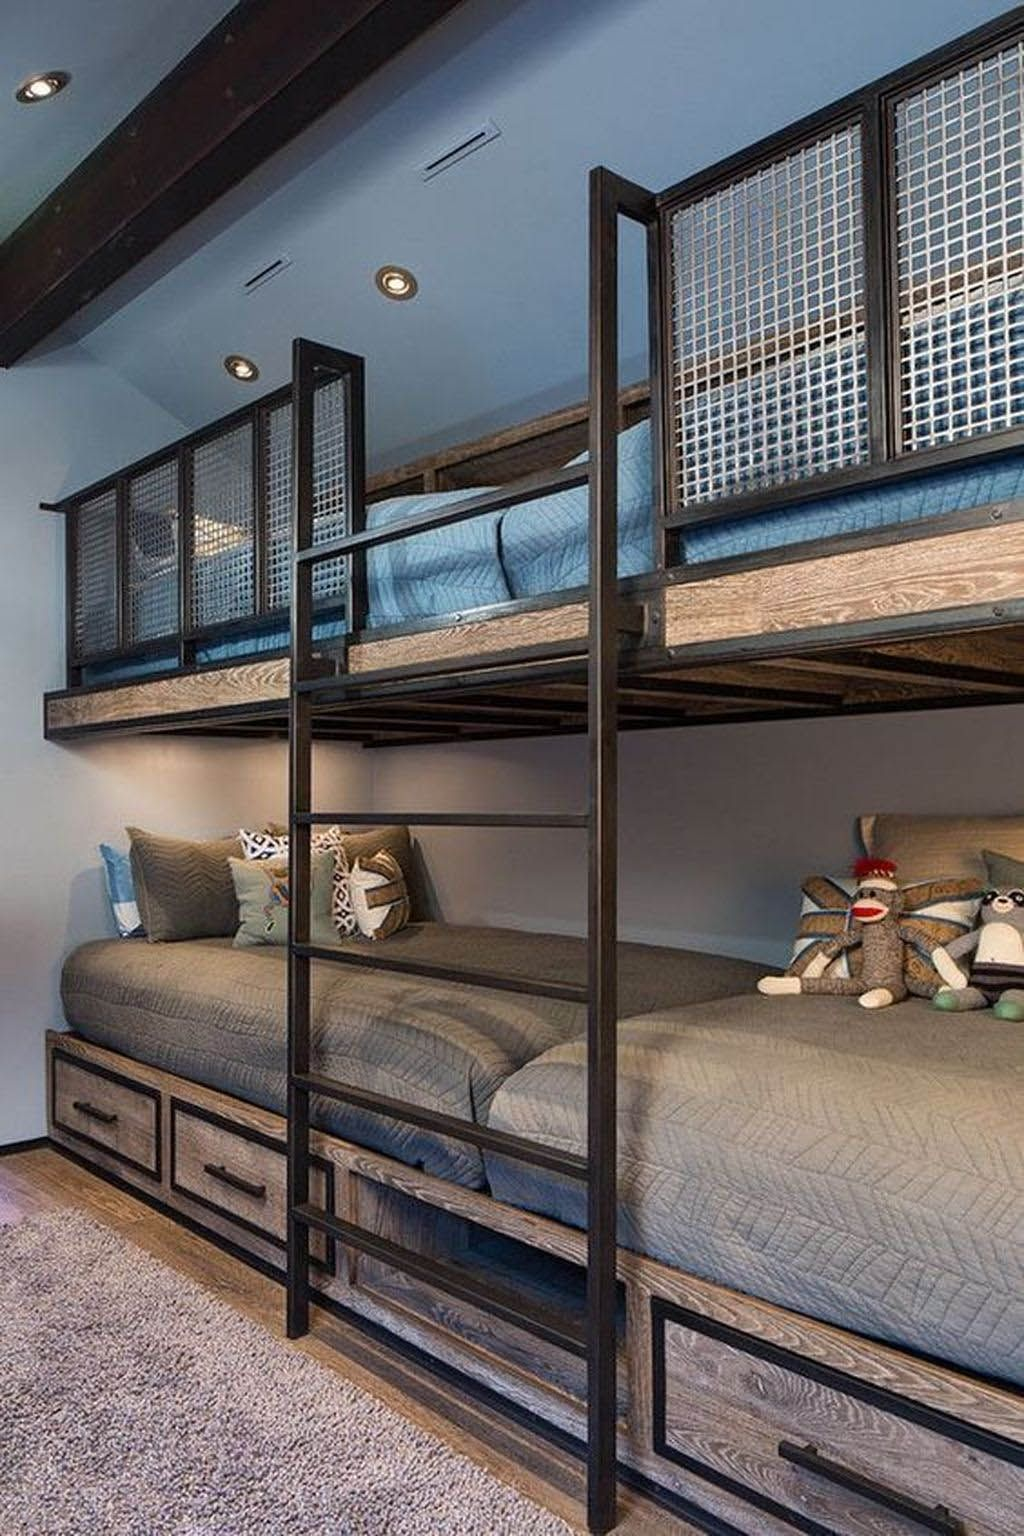 Wonderful Toddler Boy And Girl Bedroom Ideas For Your Cozy Home Bunk Bed Rooms Bunk Beds Built In Space Saving Bedroom